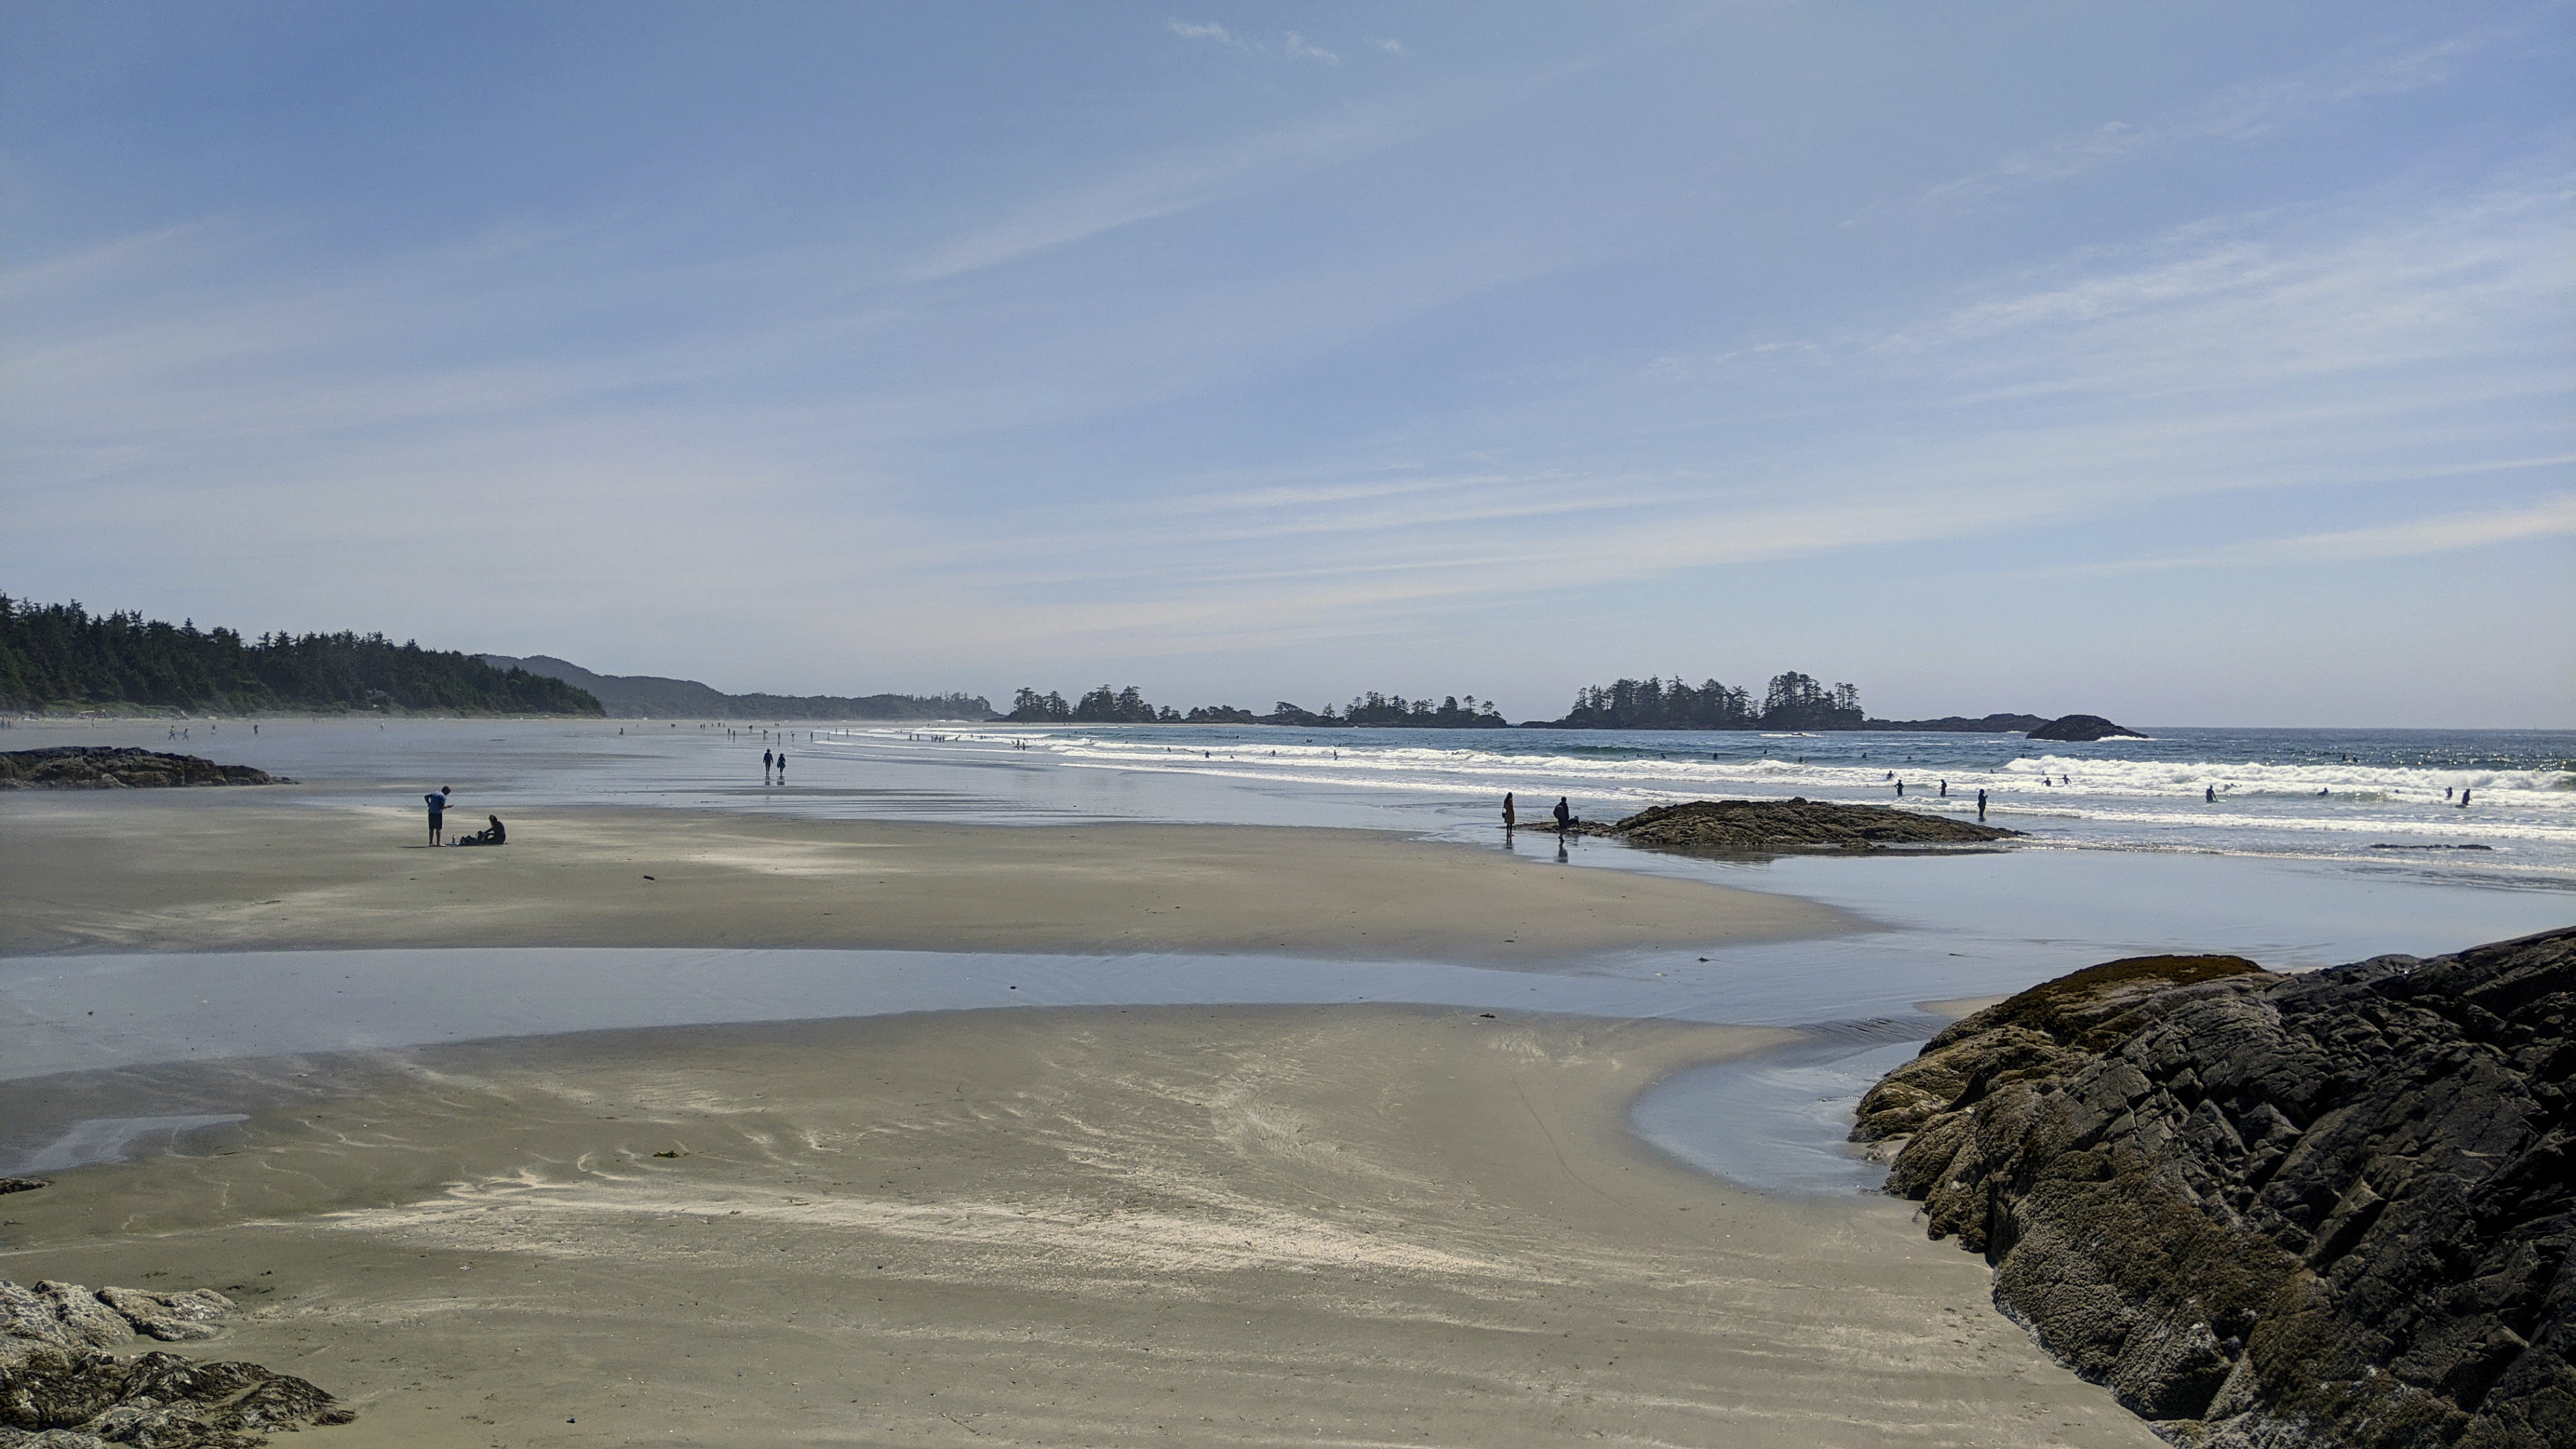 The beach in Tofino